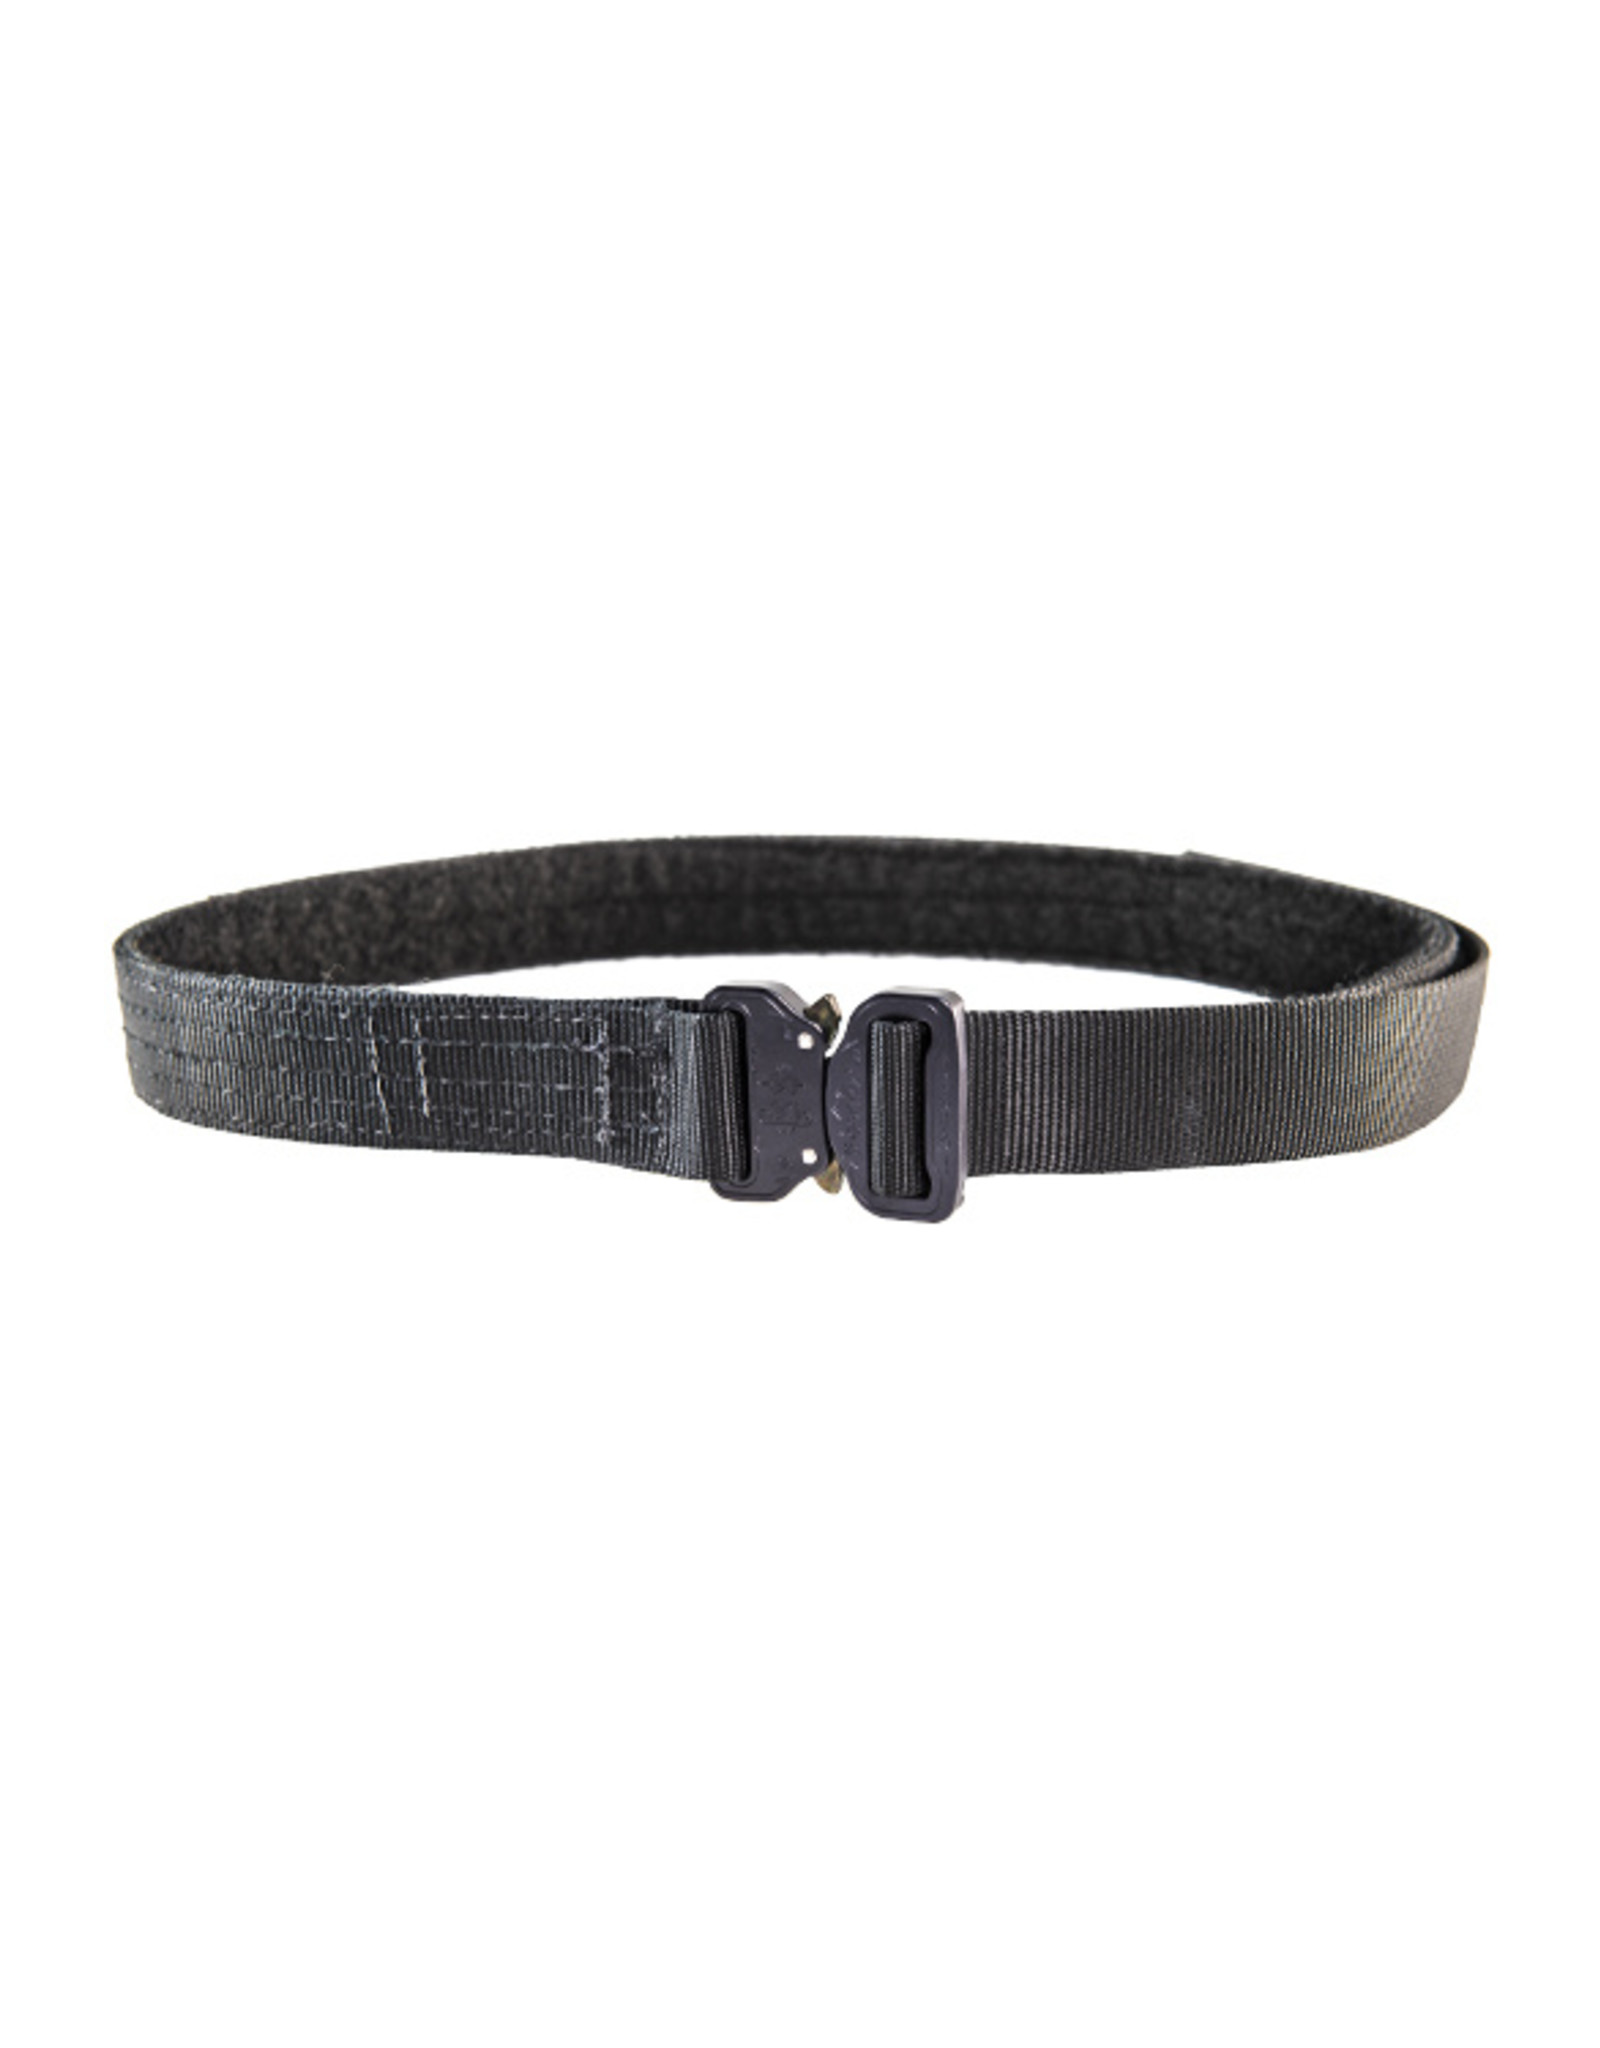 "HIGH SPEED GEAR HIGH SPEED GEAR (HSGI) COBRA 1.5"" RIGGER BELT WITH INTERIOR VELCRO"